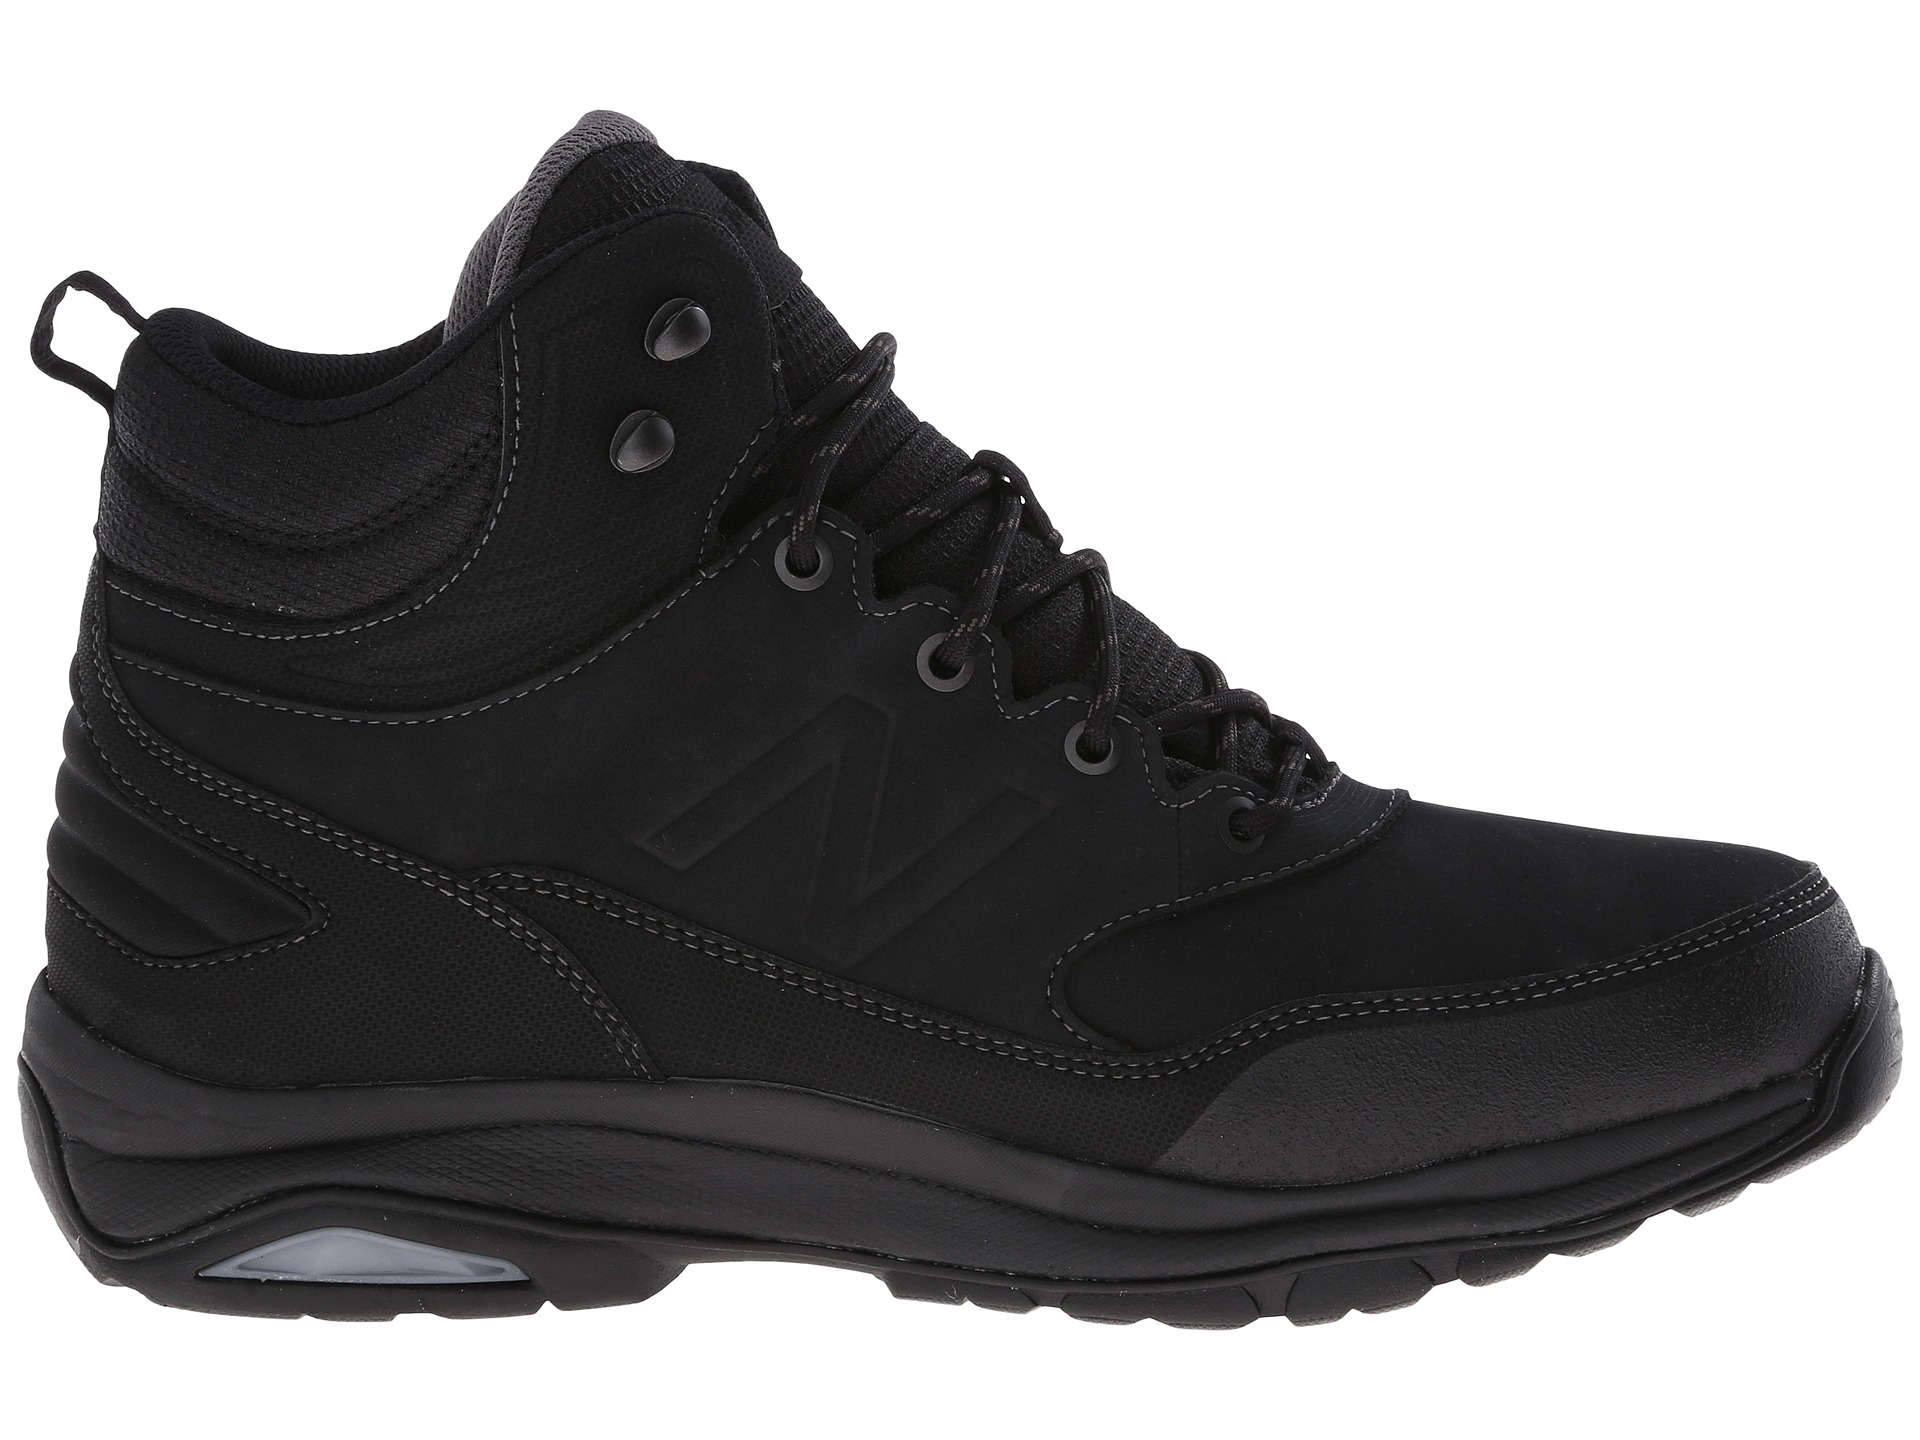 New Balance Hiking Shoes And Boots